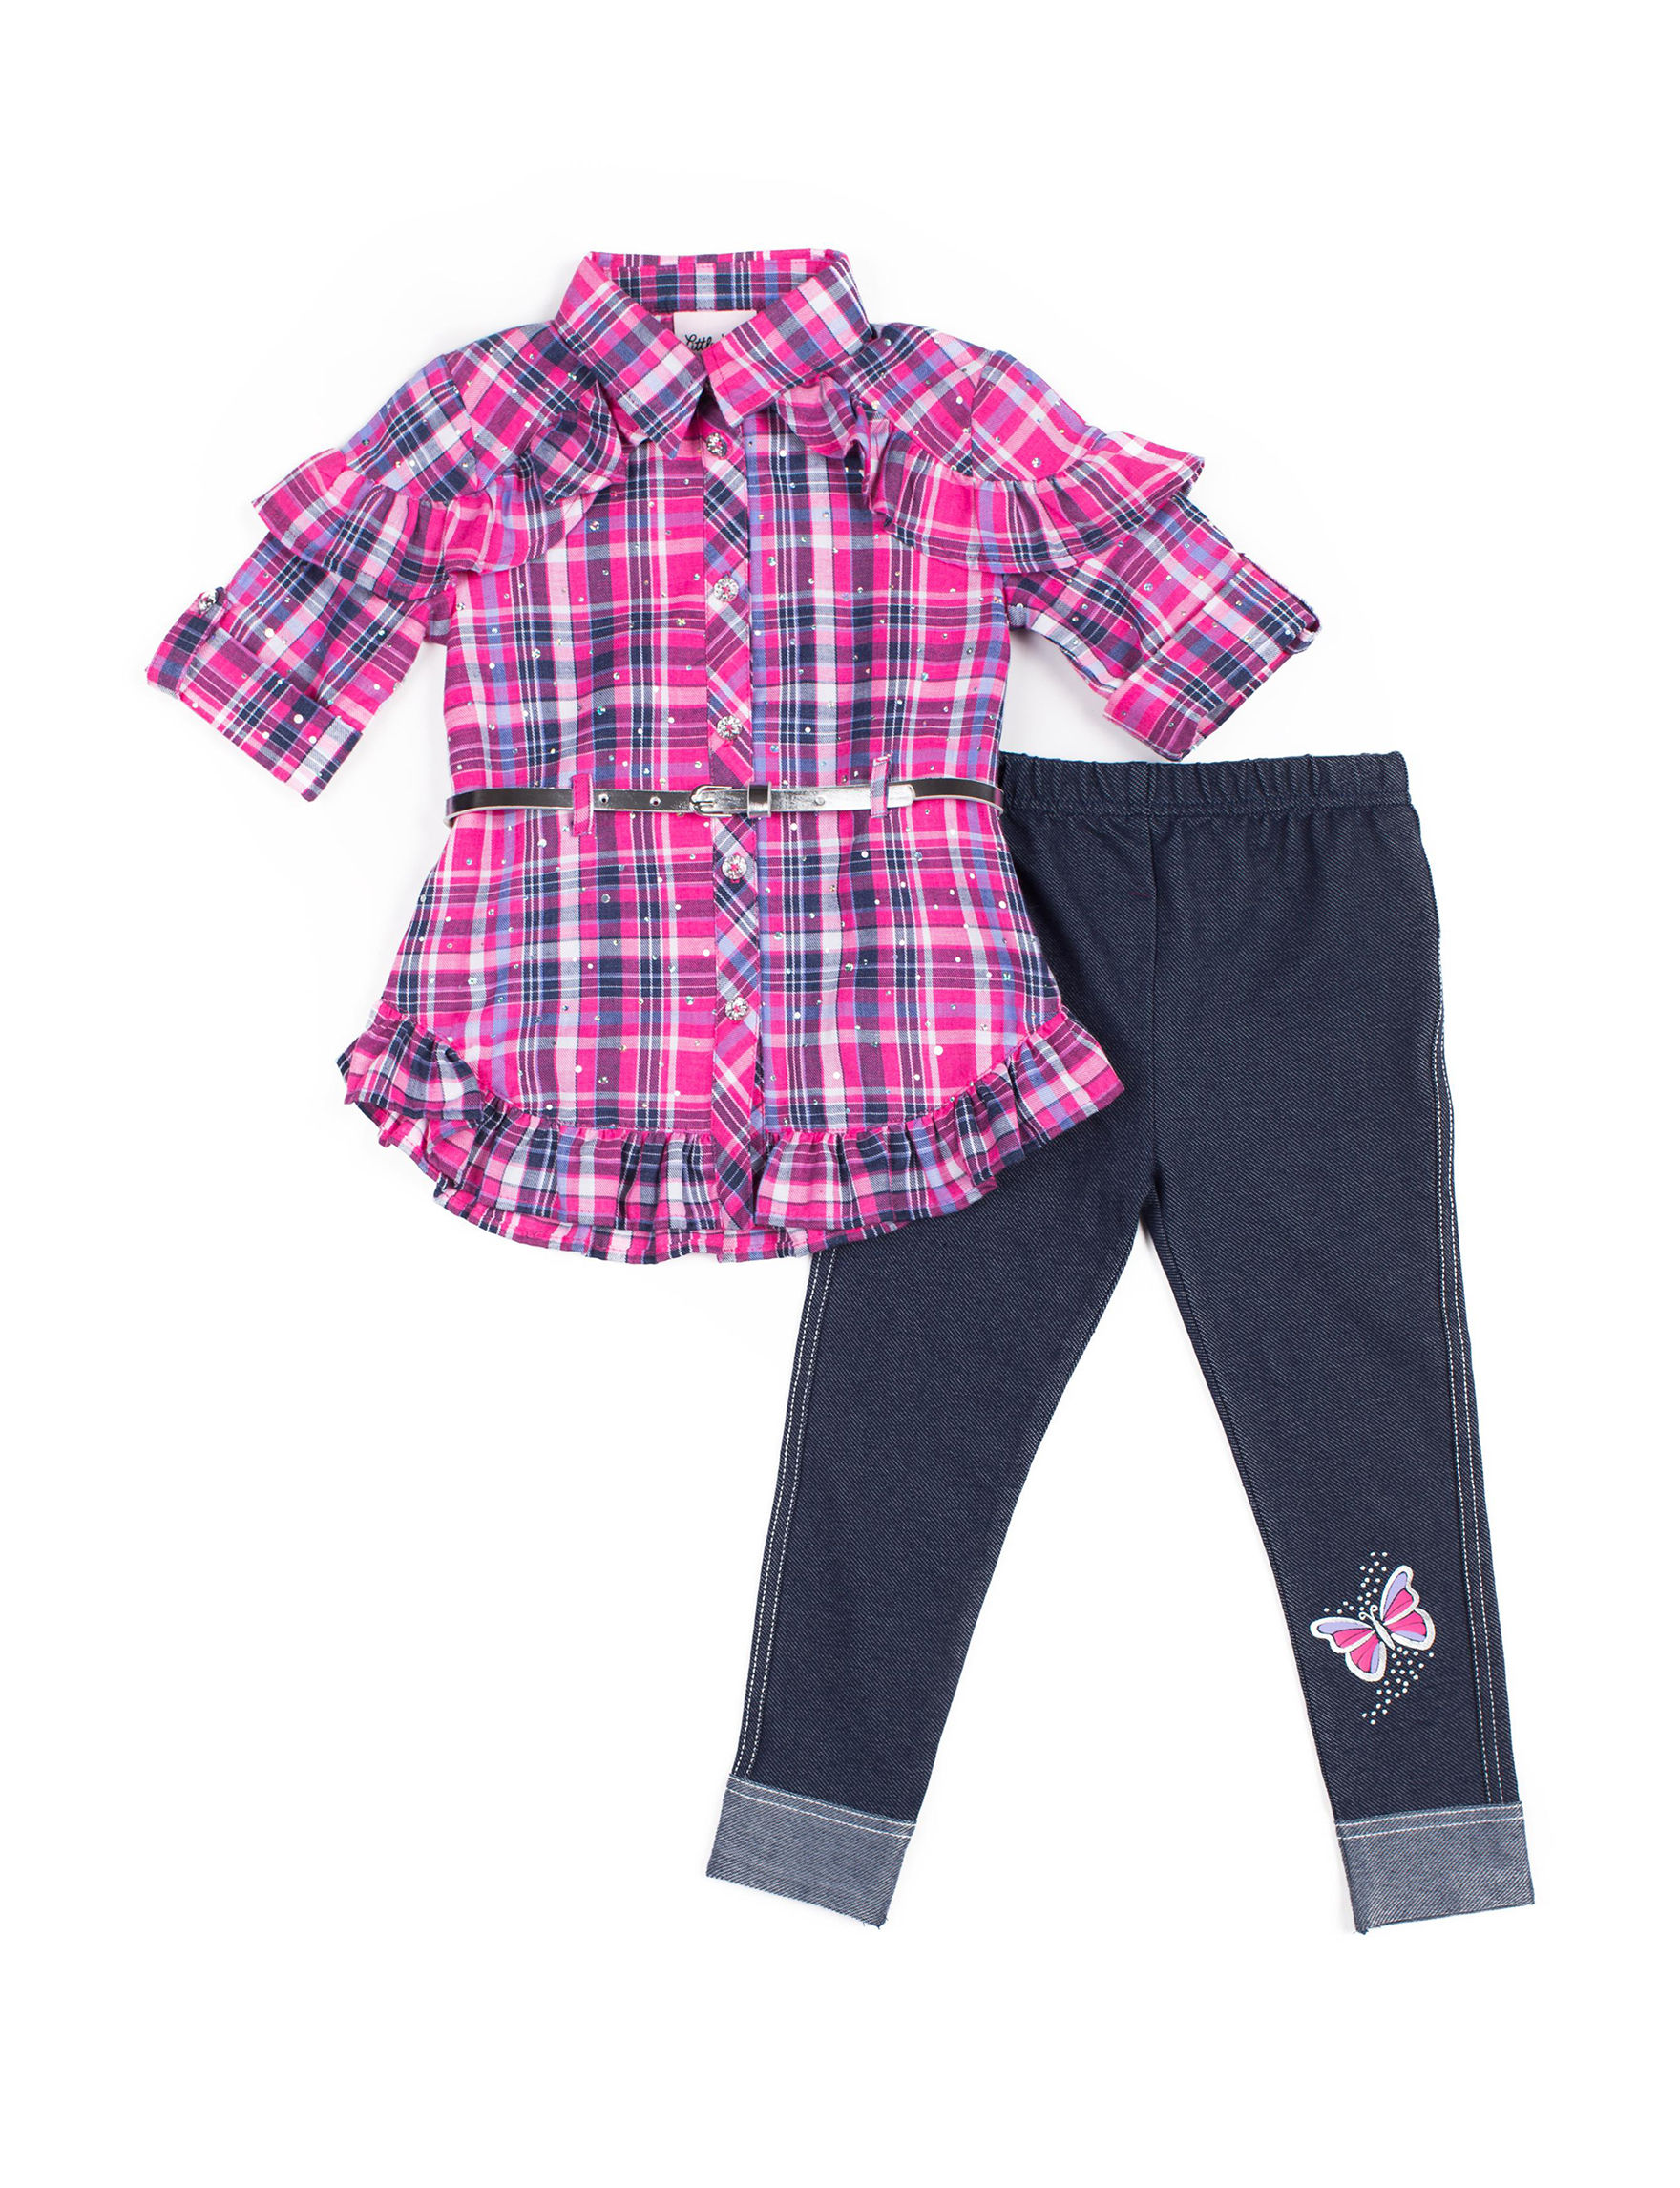 Little Lass Pink Plaid